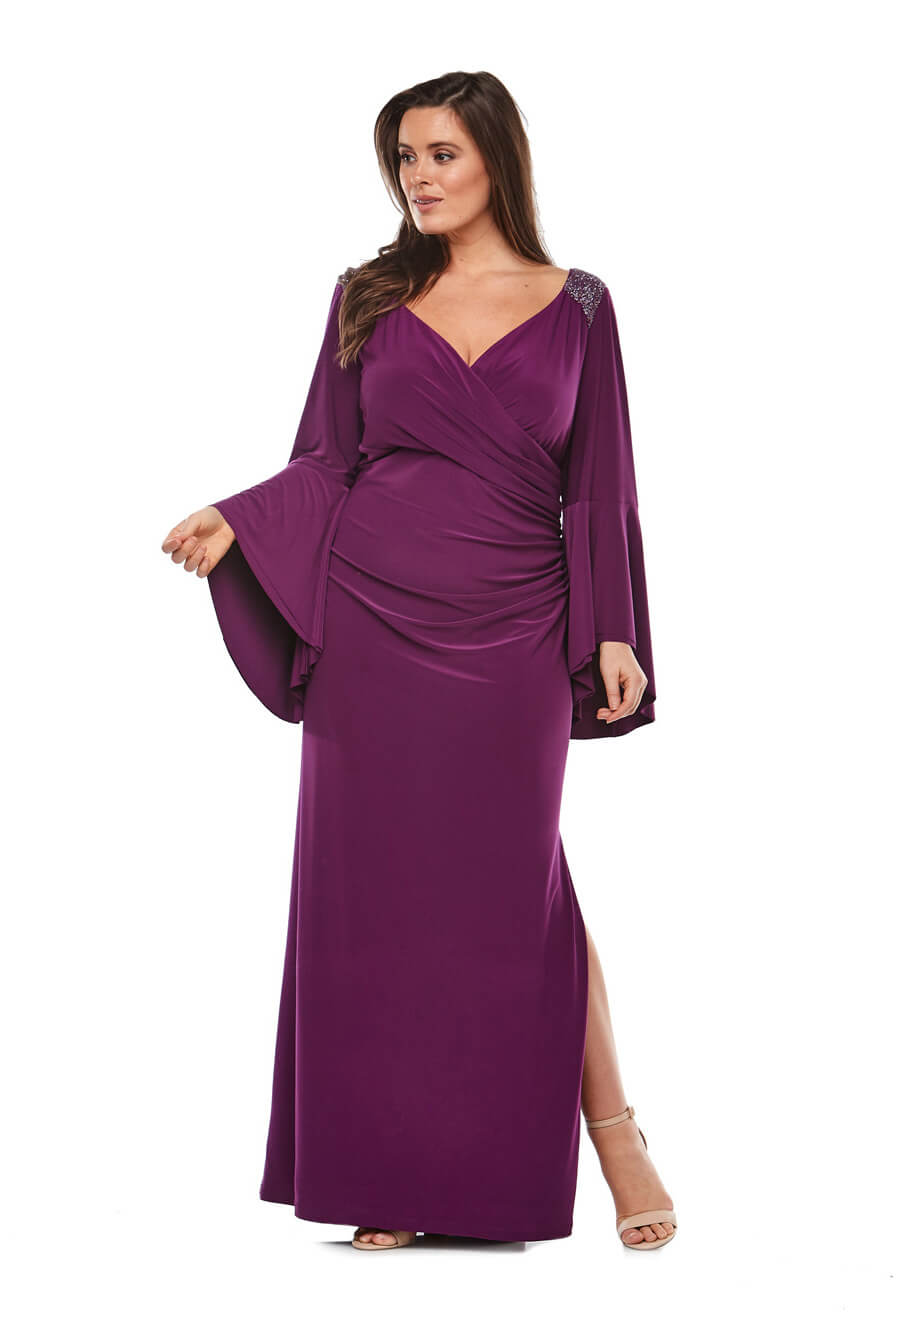 Stretch jersey wrap dress with long bell sleeves & beaded detailing